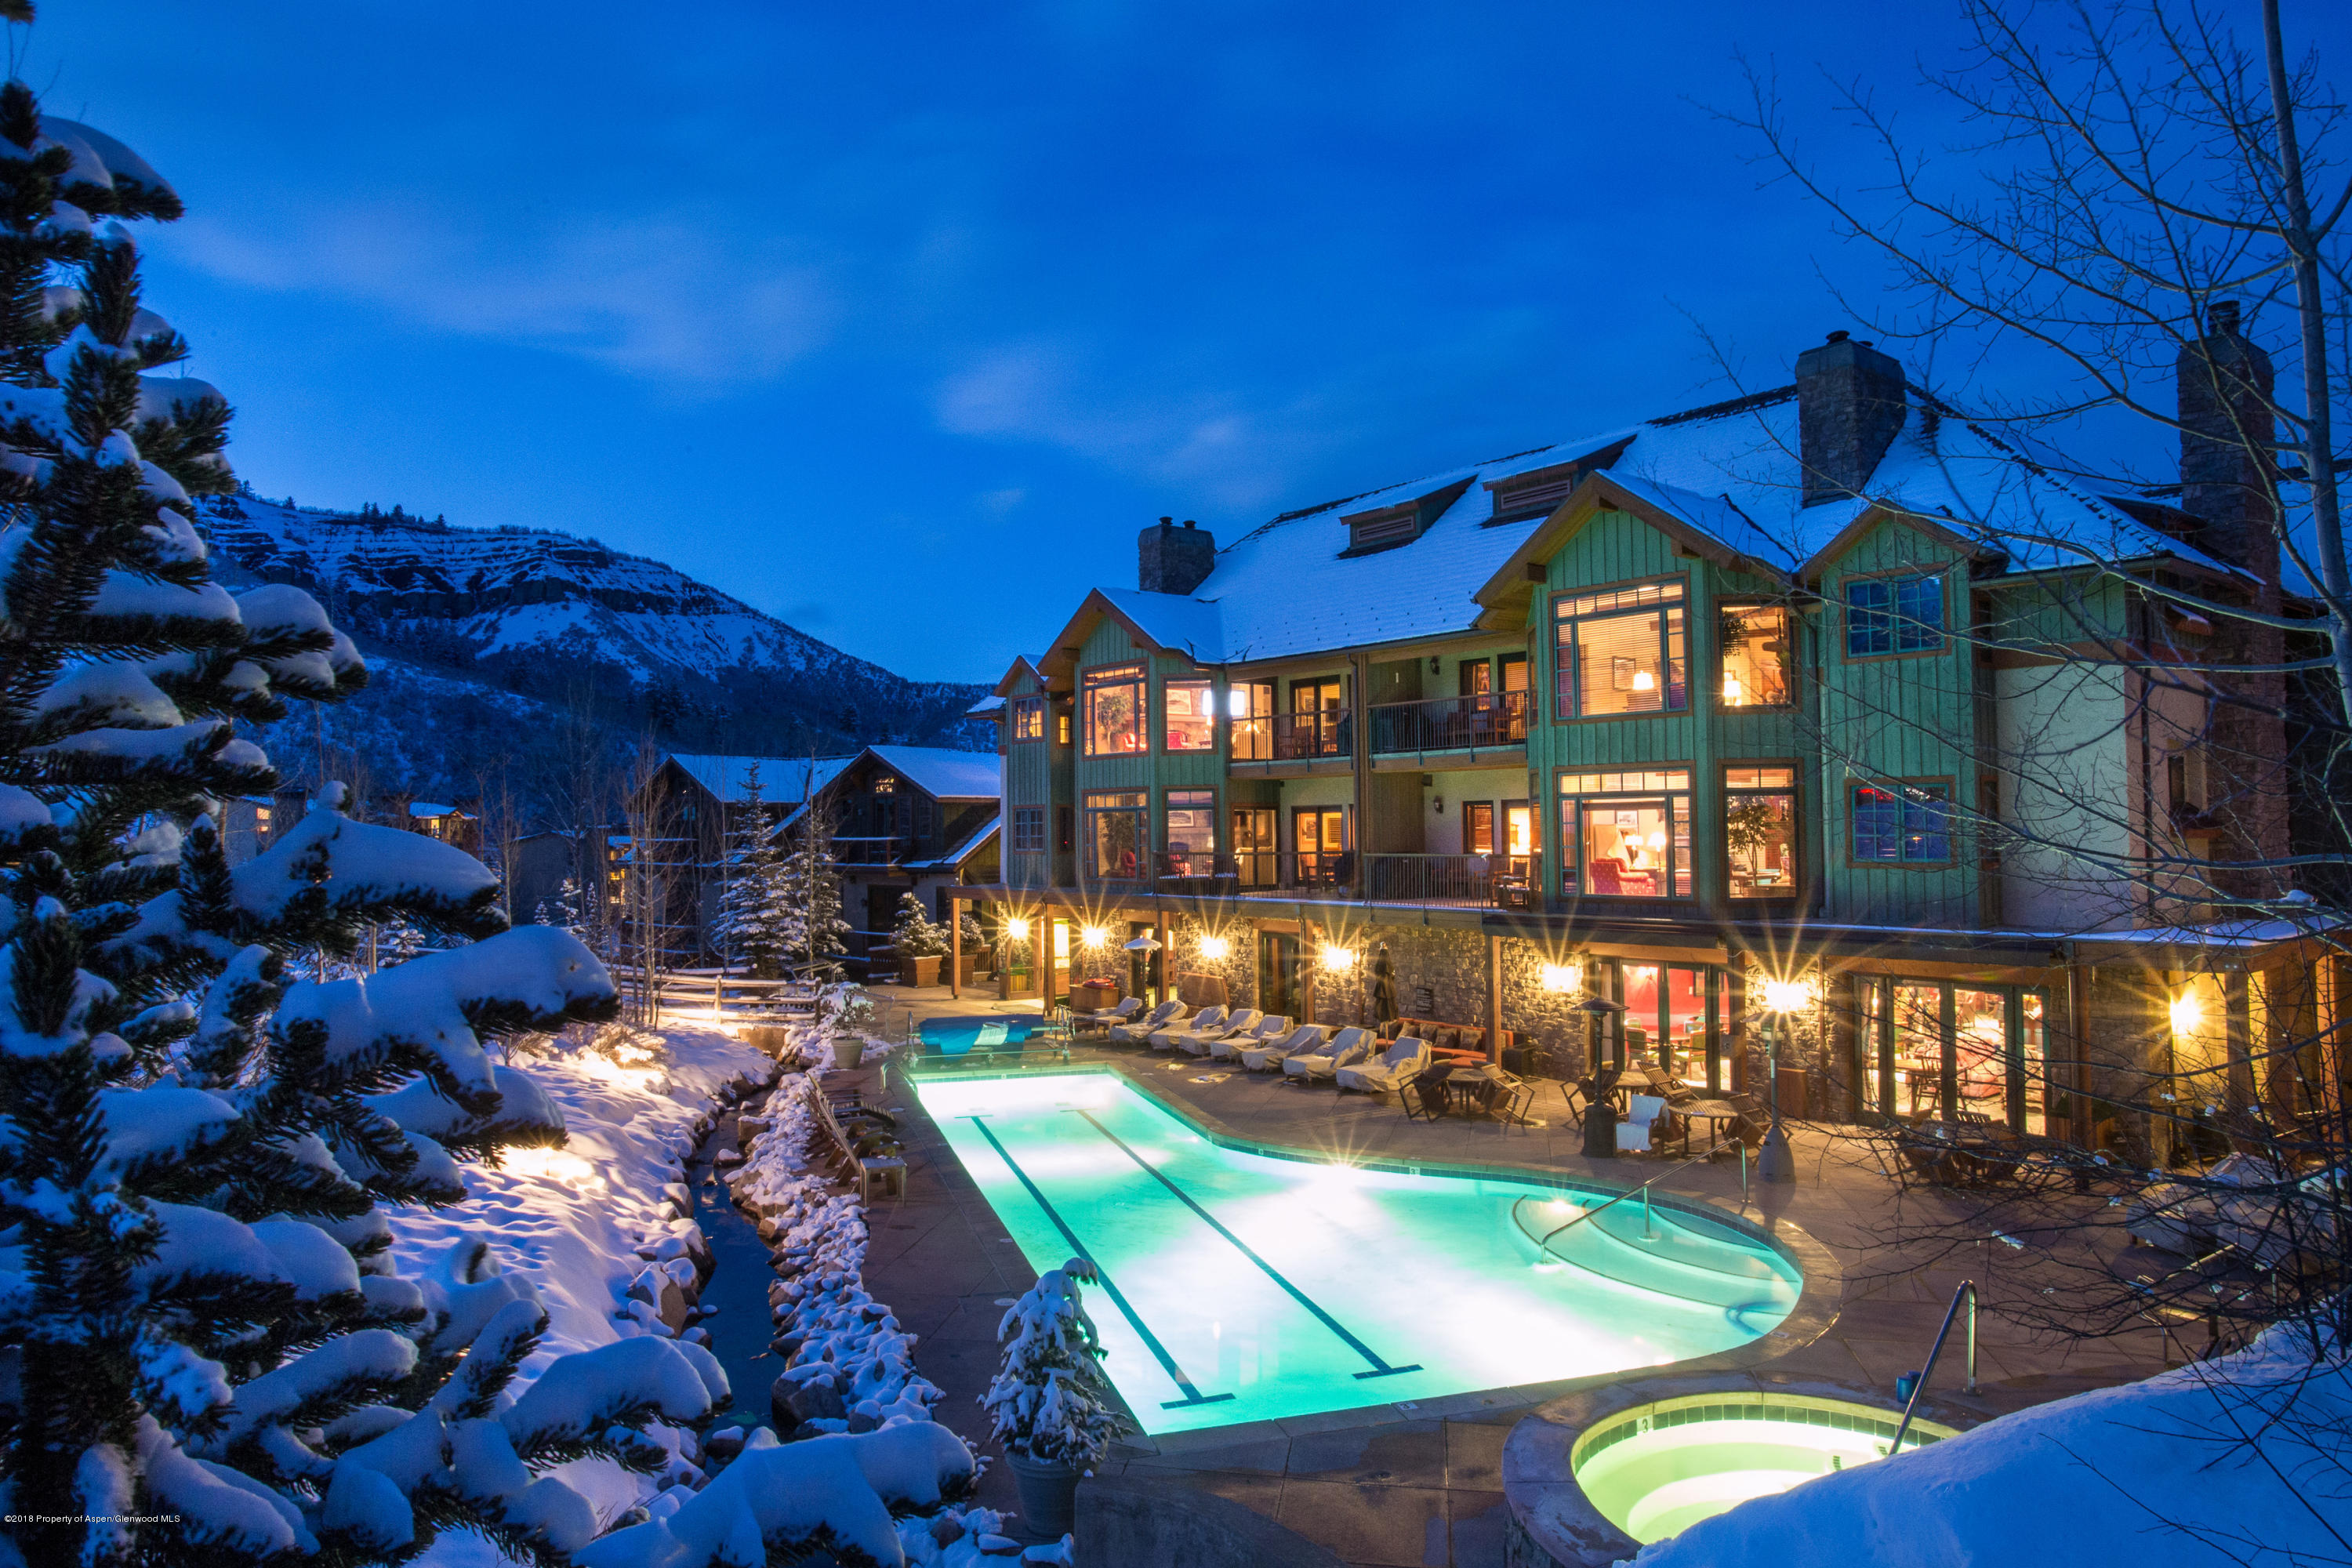 135 Timbers Club Court, C2-VIII - Snowmass Village, Colorado